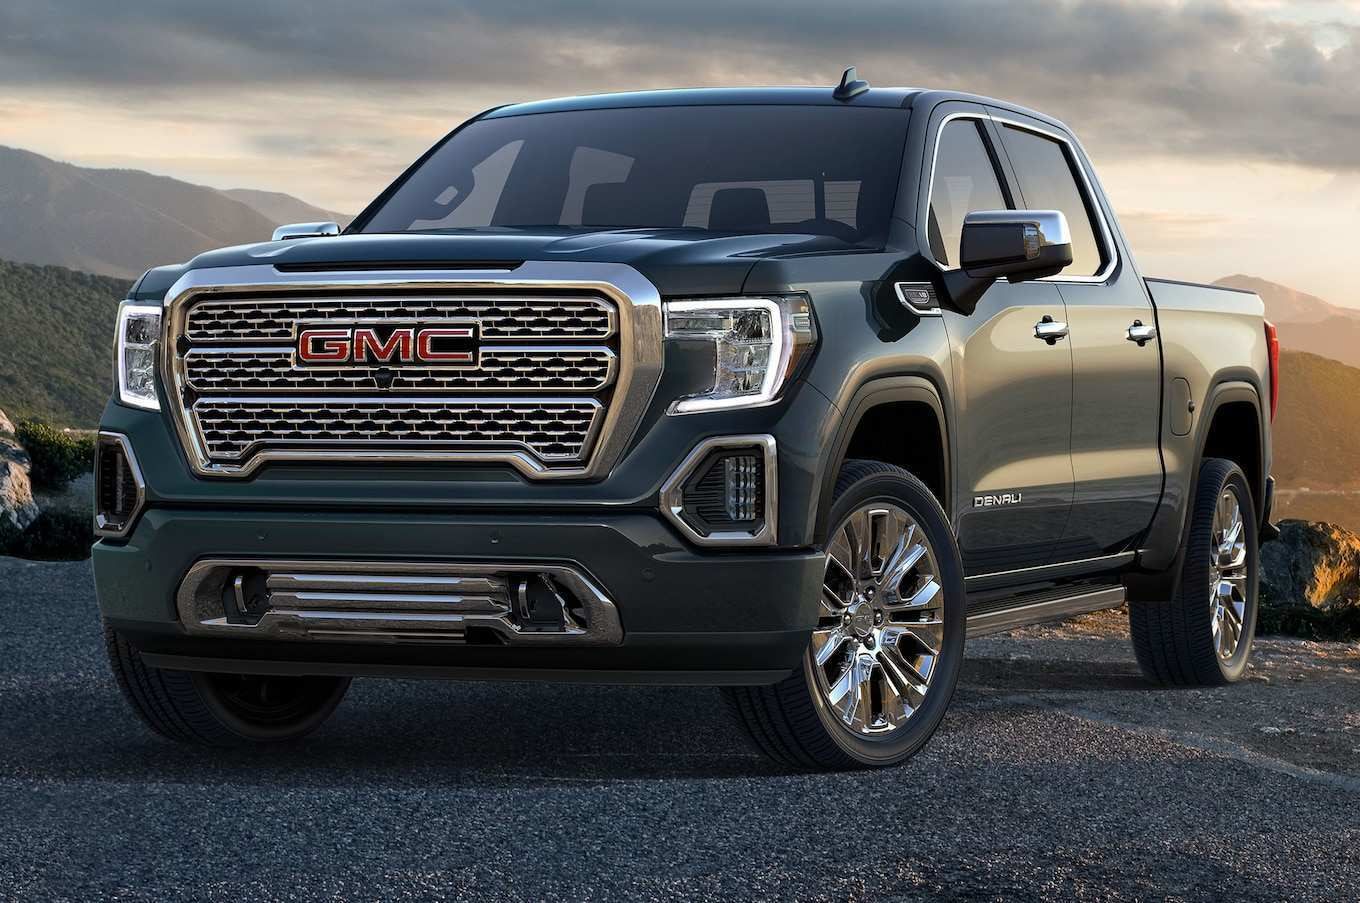 73 Best Review 2019 Gmc 2500 Sierra Denali New Review with 2019 Gmc 2500 Sierra Denali